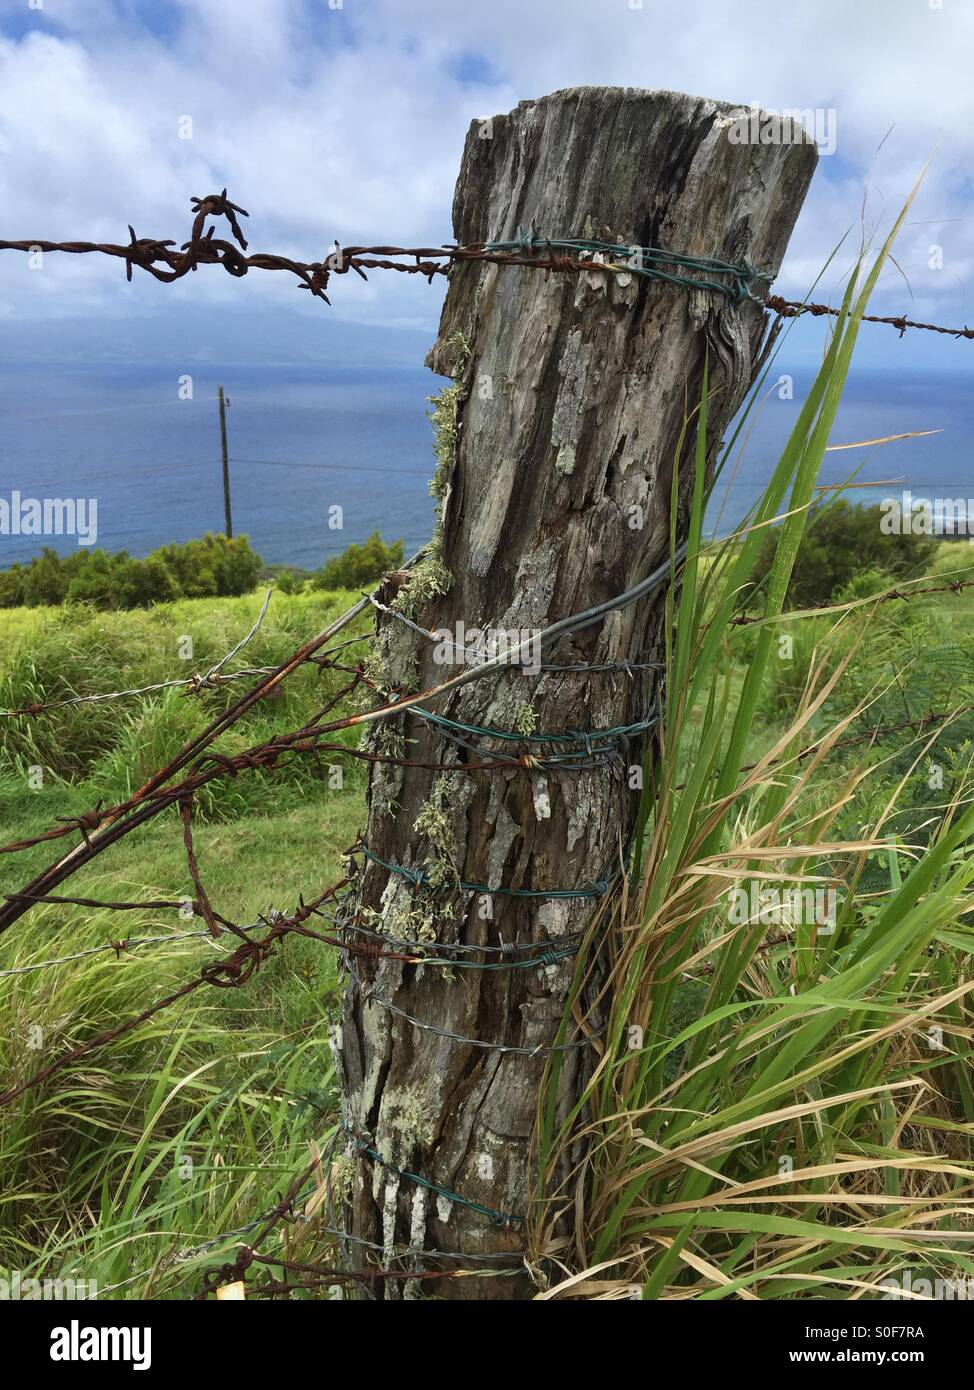 The old fence post - Stock Image